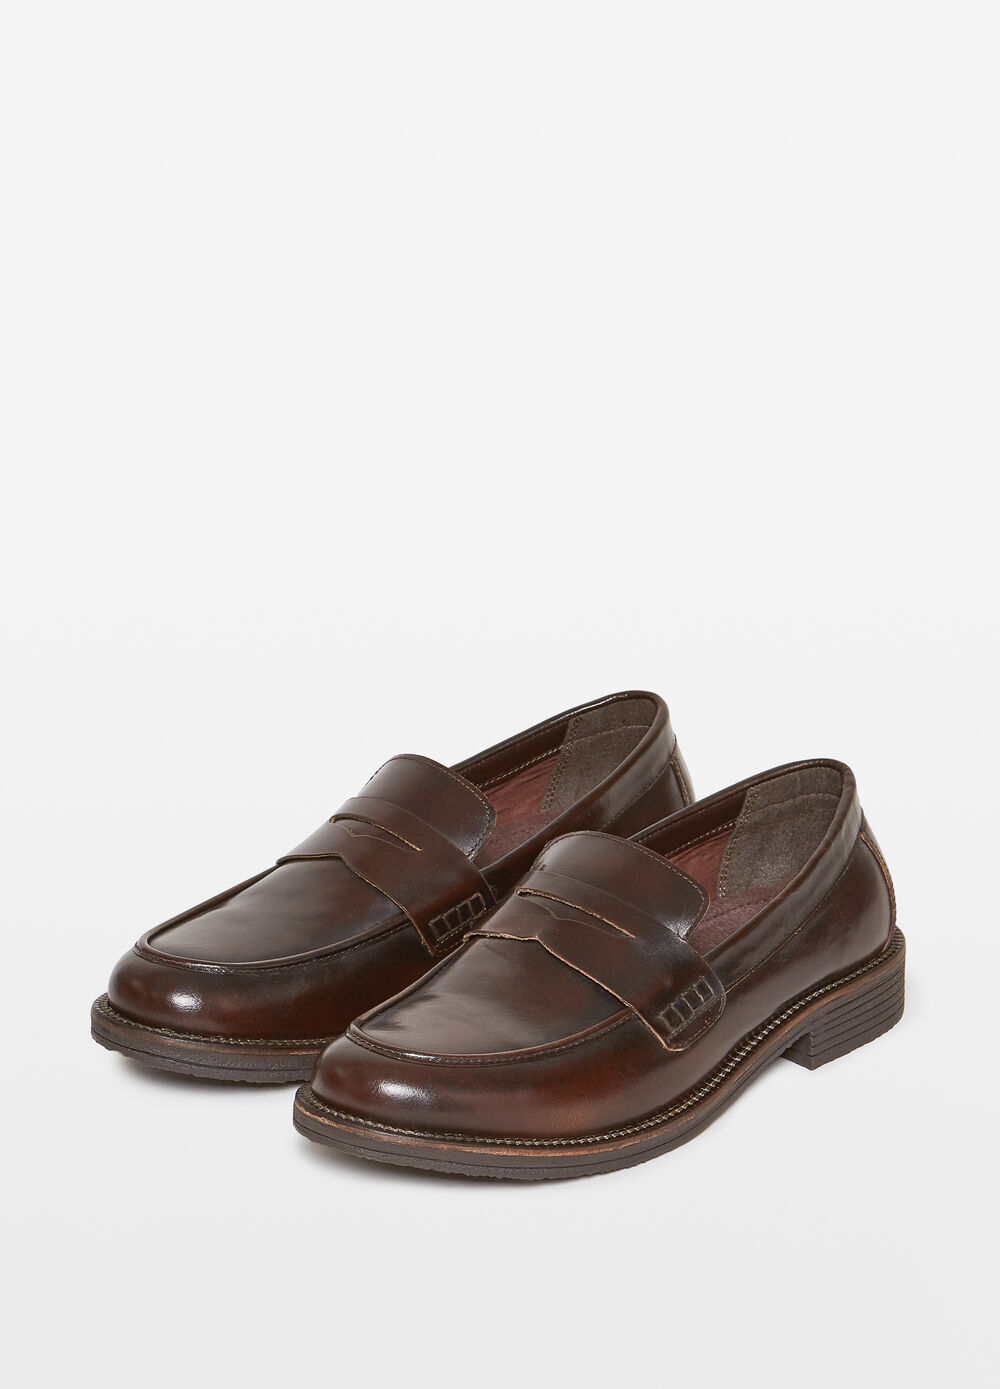 Leather moccasins with strap